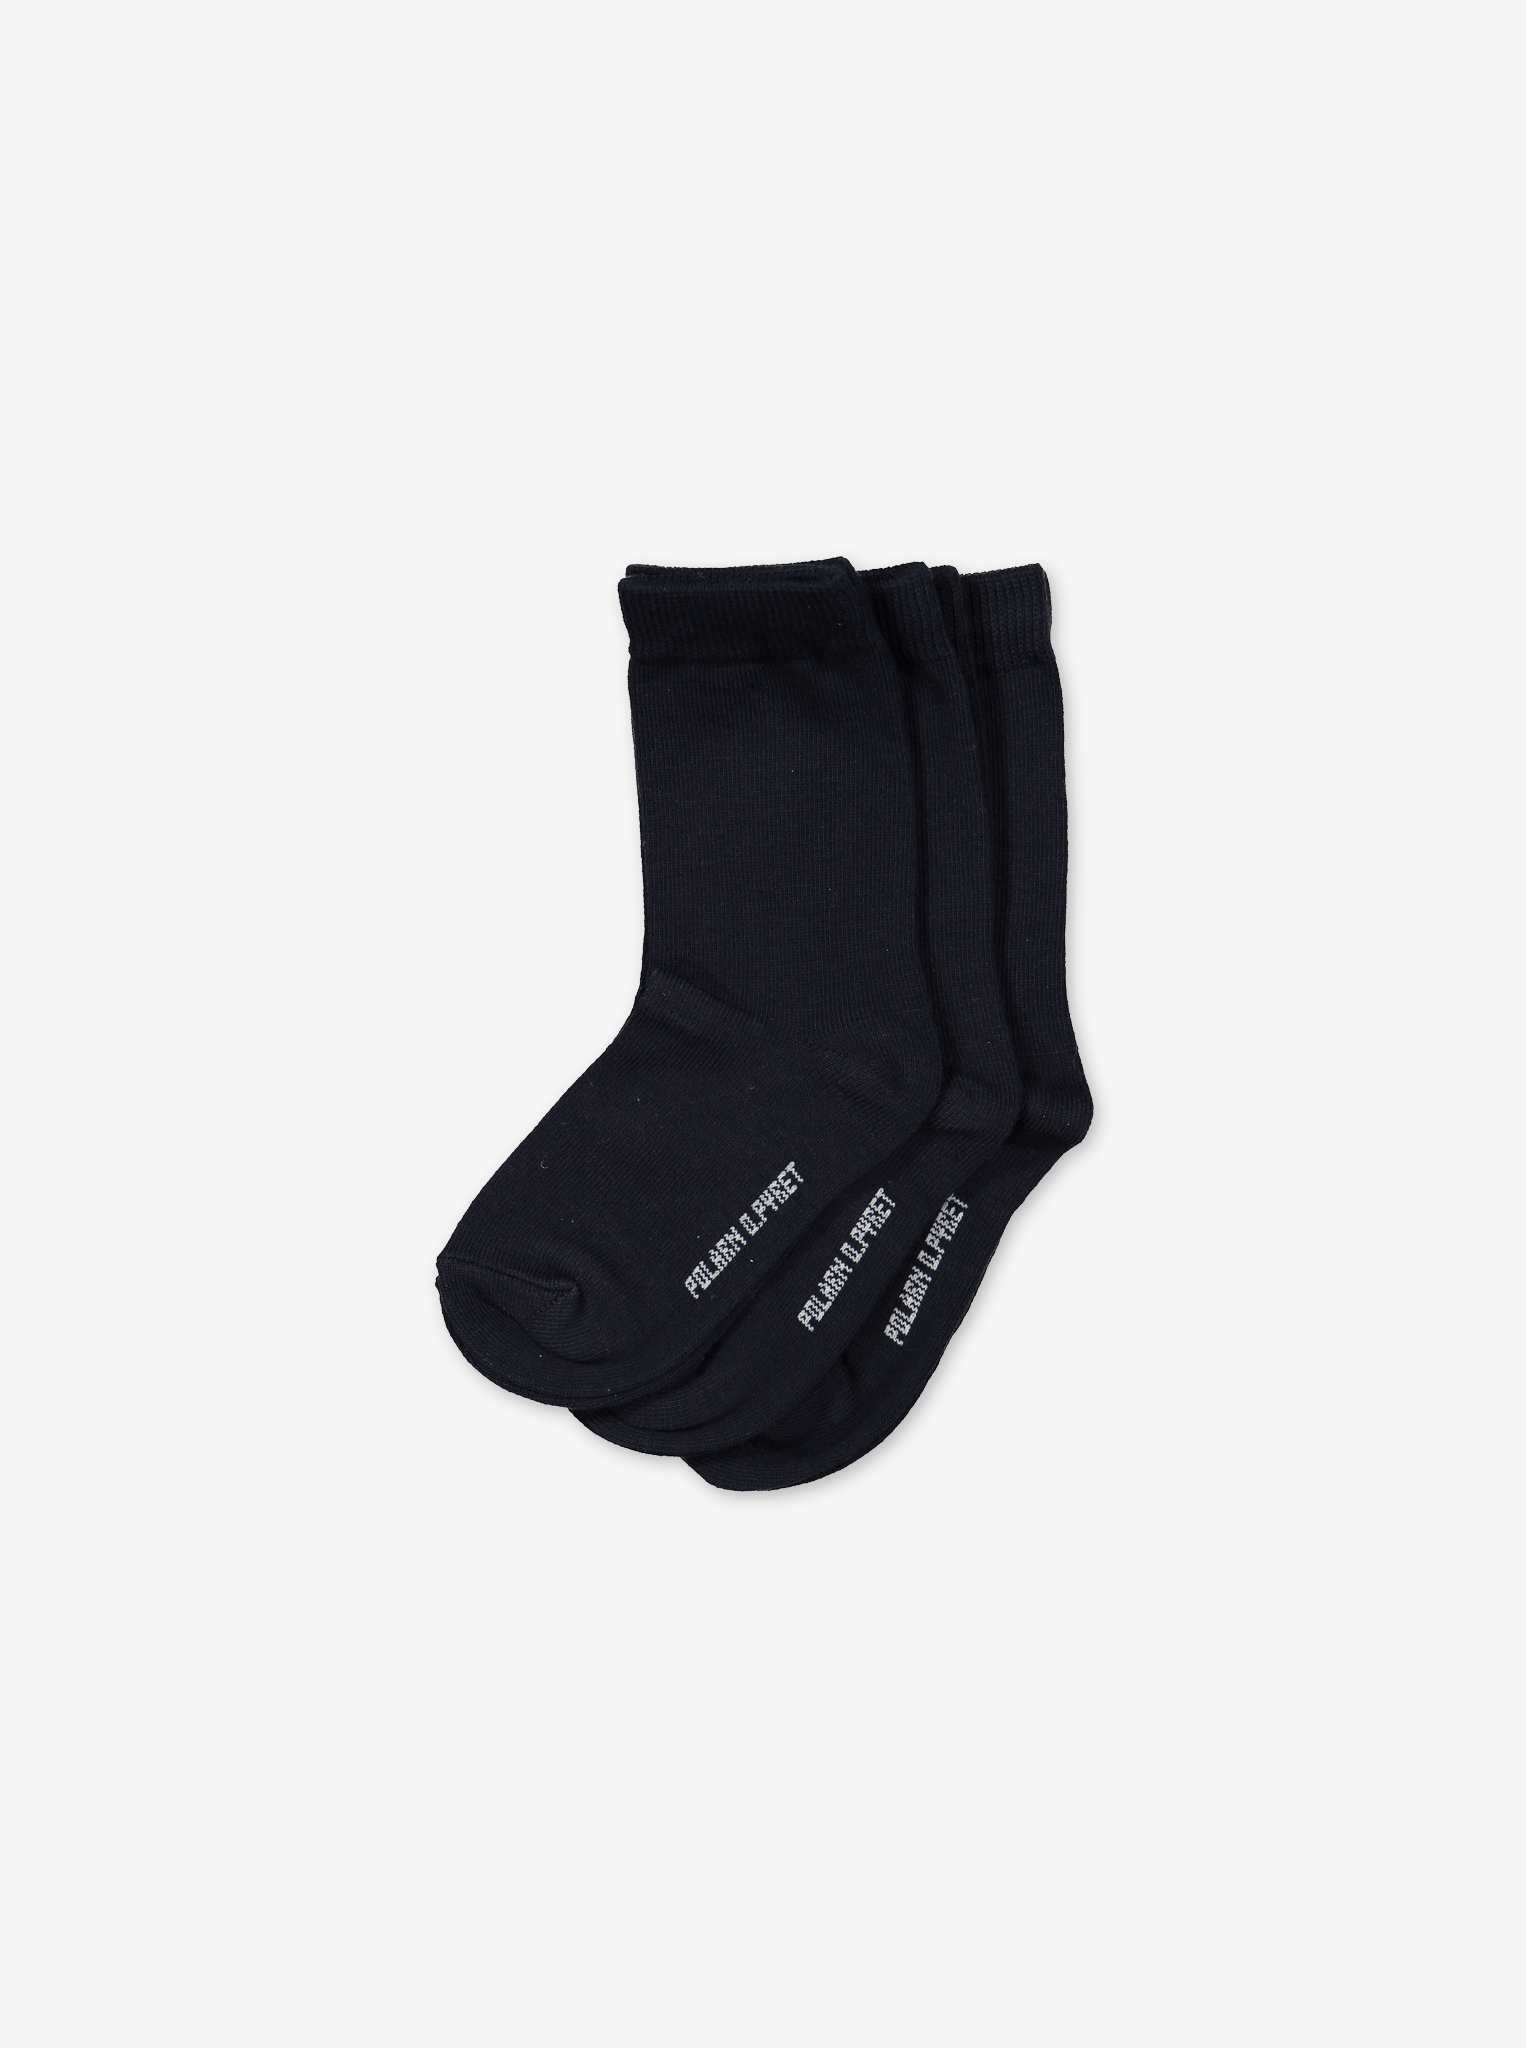 3 Pack Kids Socks Black Unisex 2-12y